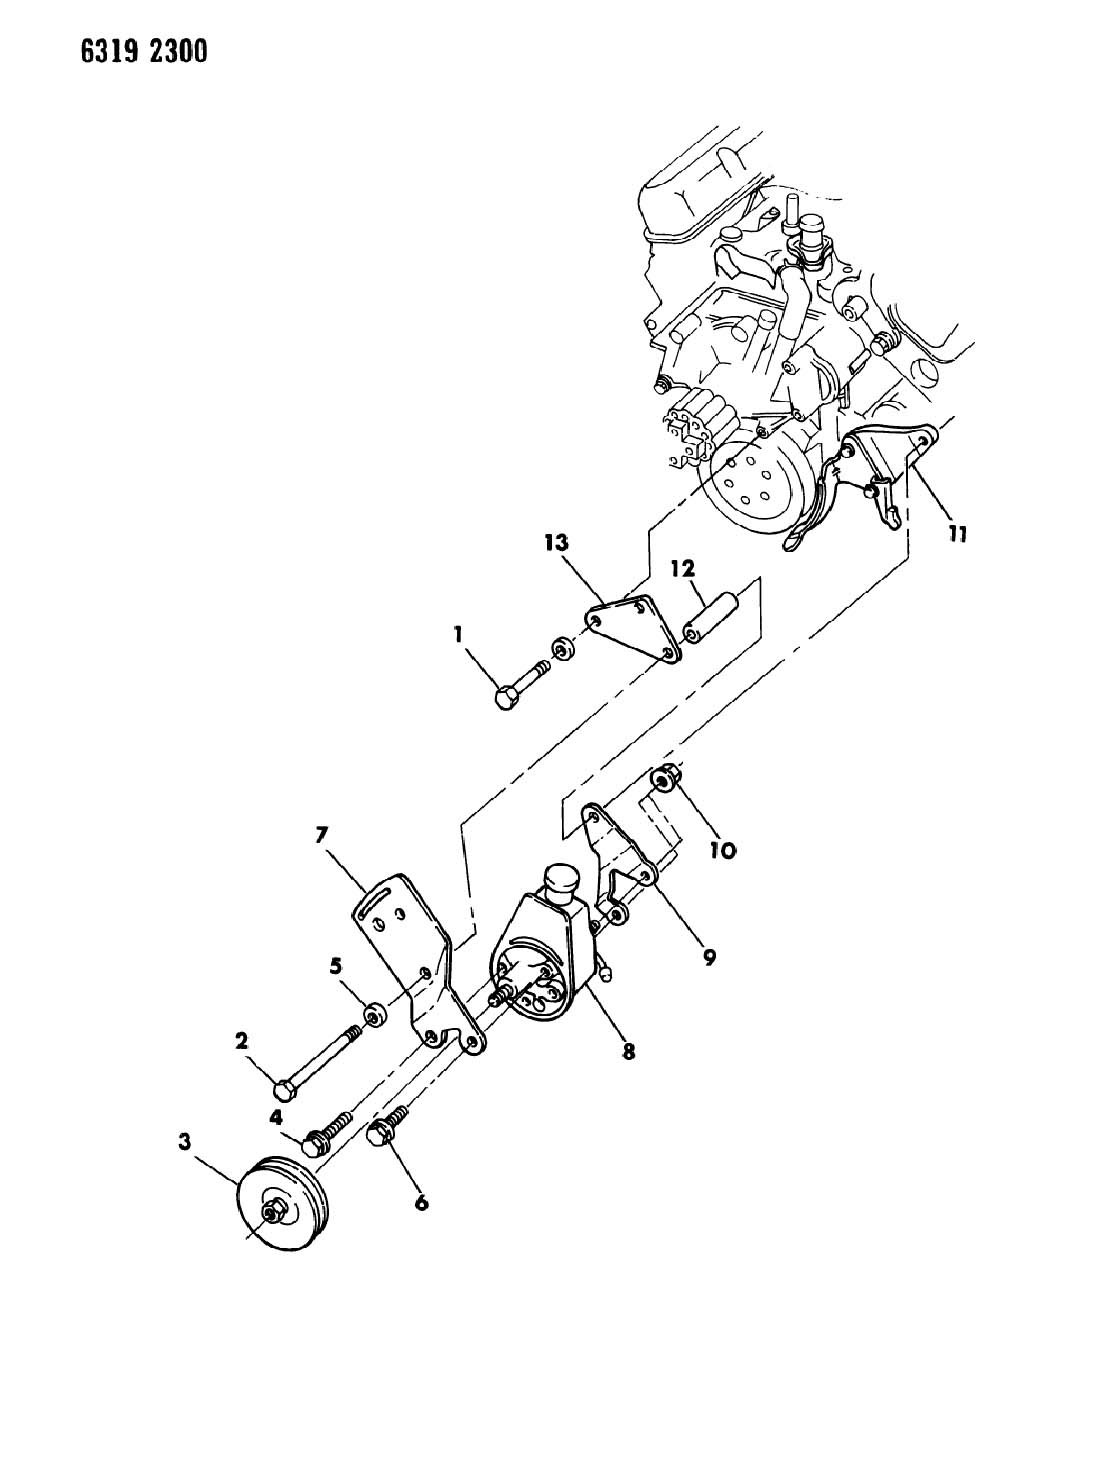 PUMP MOUNTING, POWER STEERING 318,360 ENG. WITHOUT REMOTE